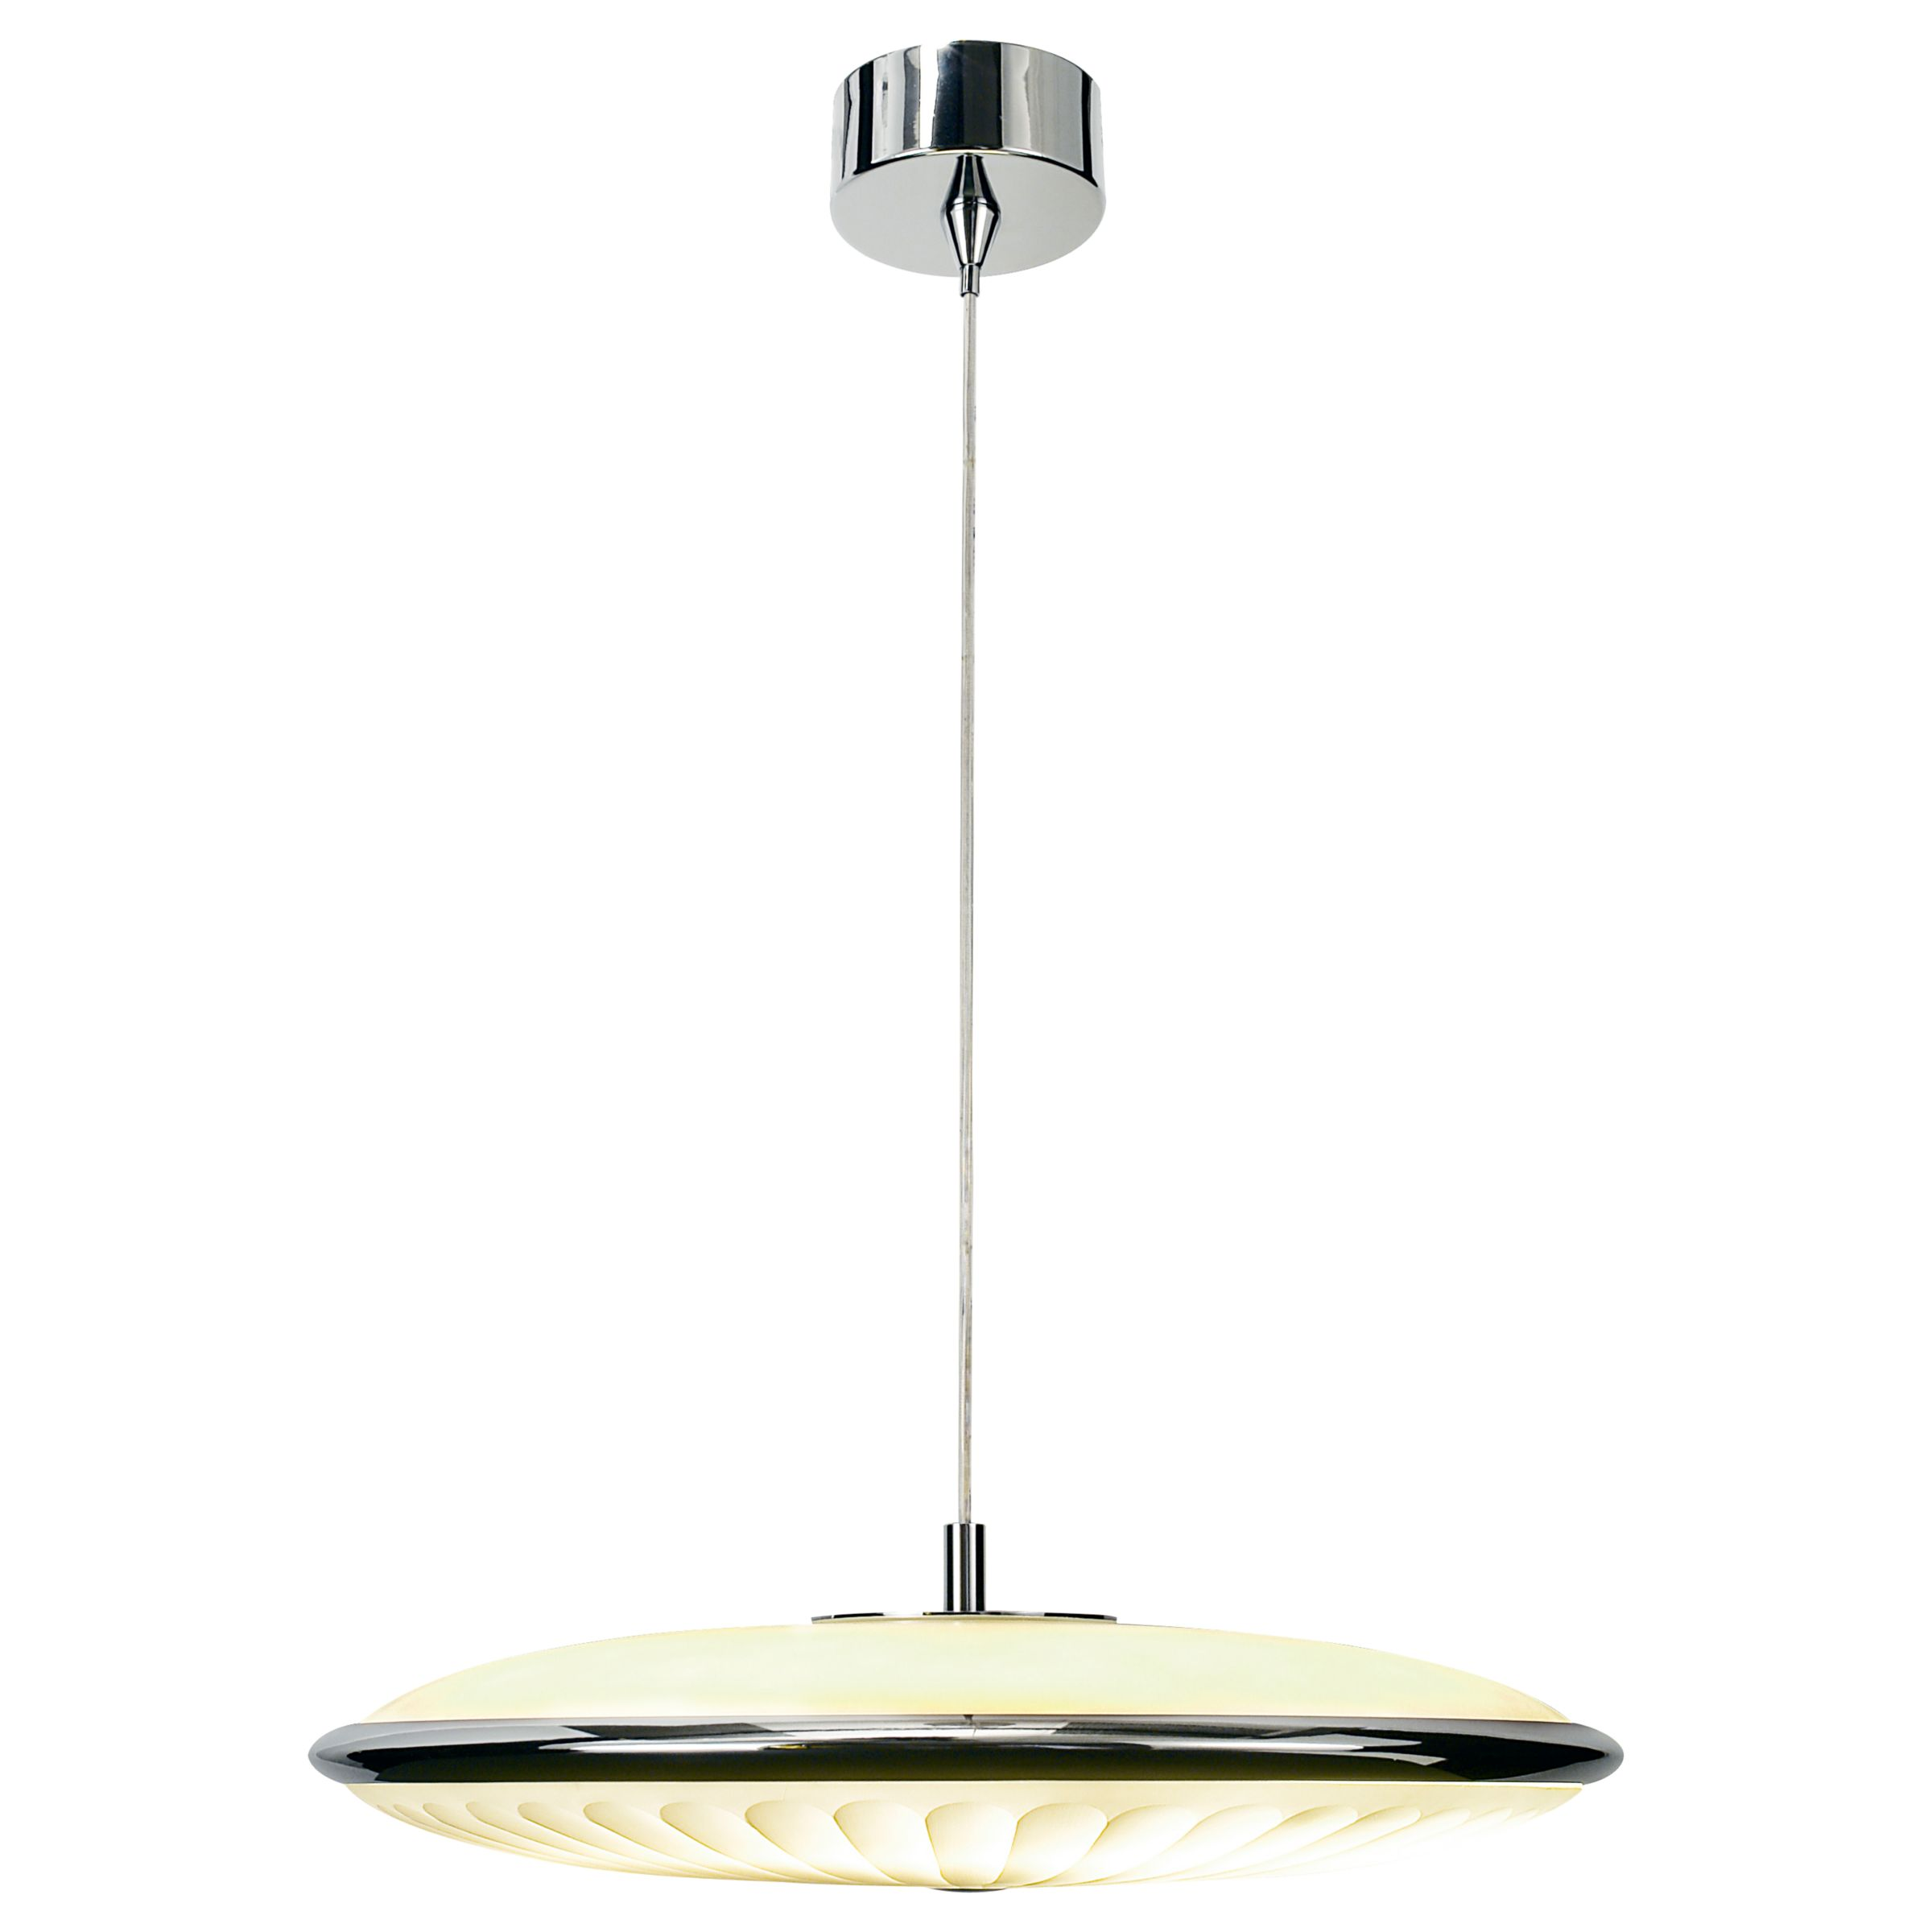 John lewis ceiling lights chrome : John lewis jenna ceiling light review compare prices